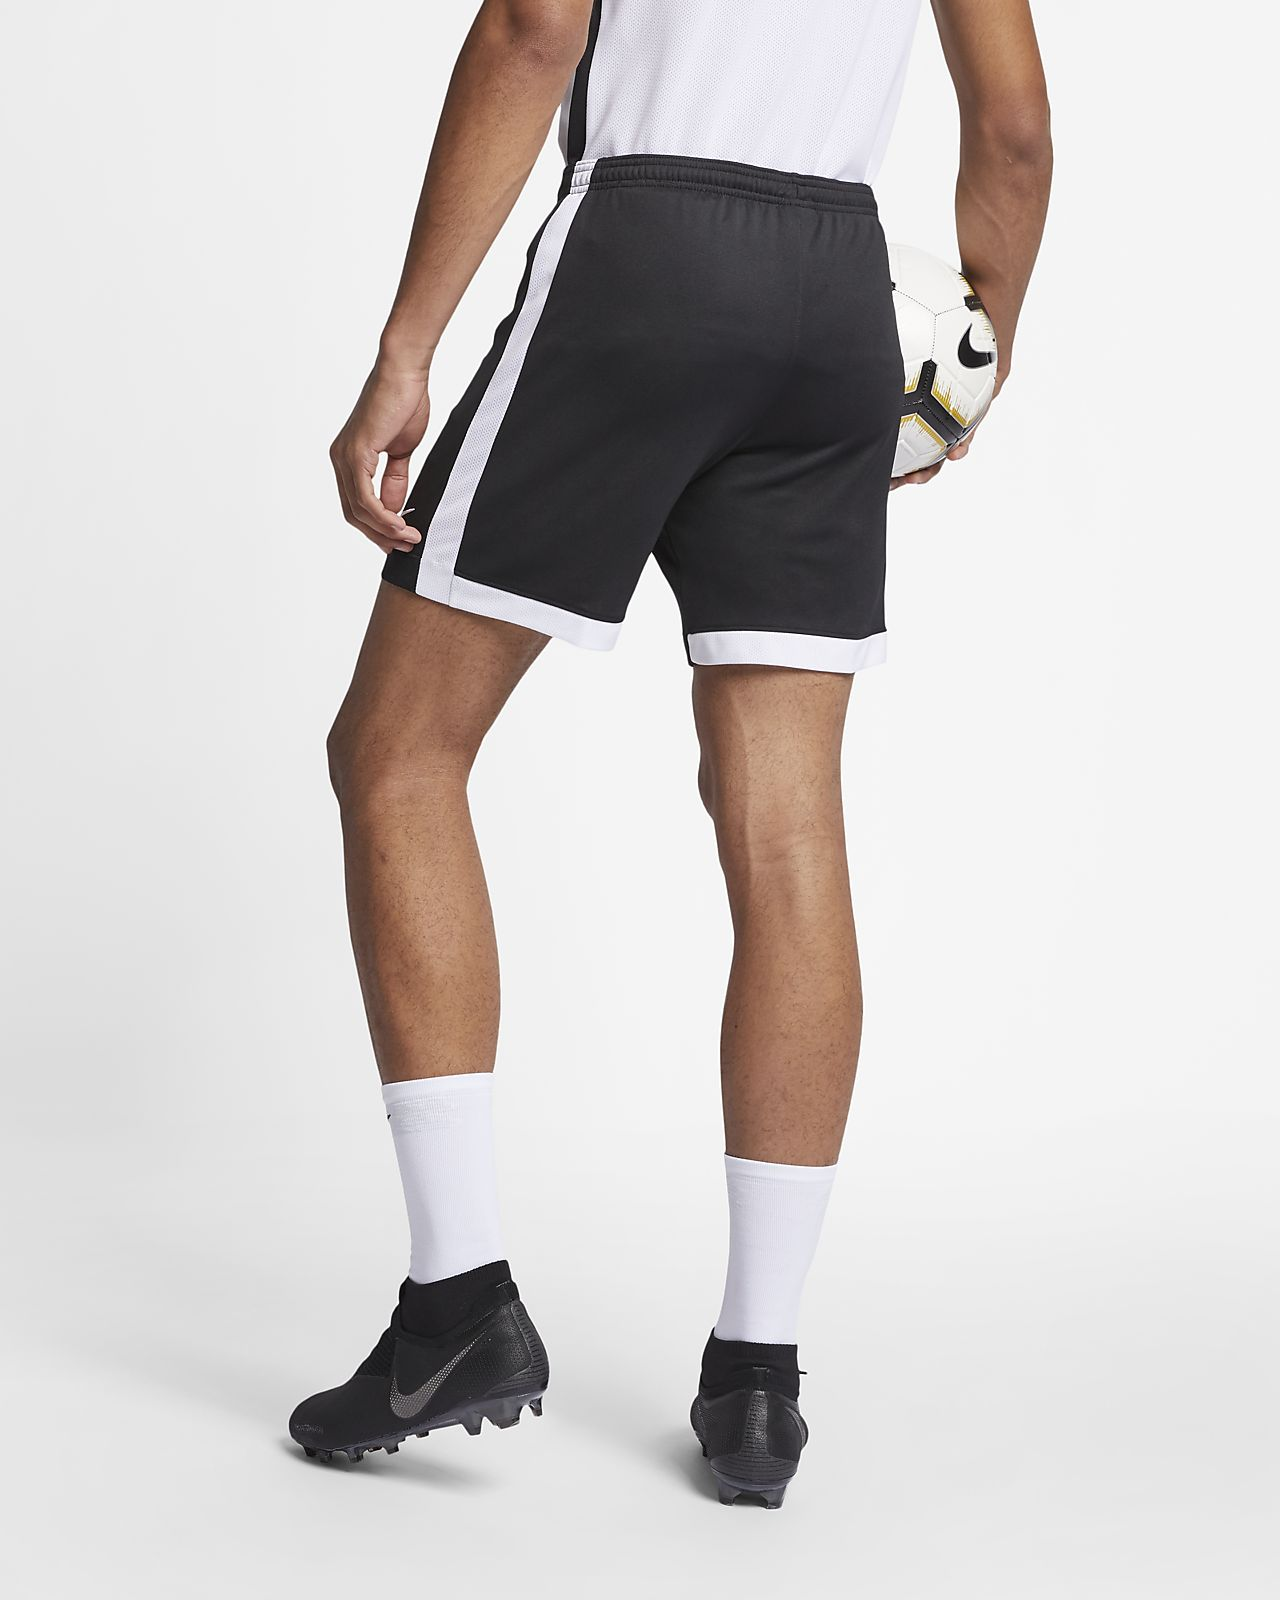 Nike Men's Dry Academy Soccer Shorts & Reviews Shorts